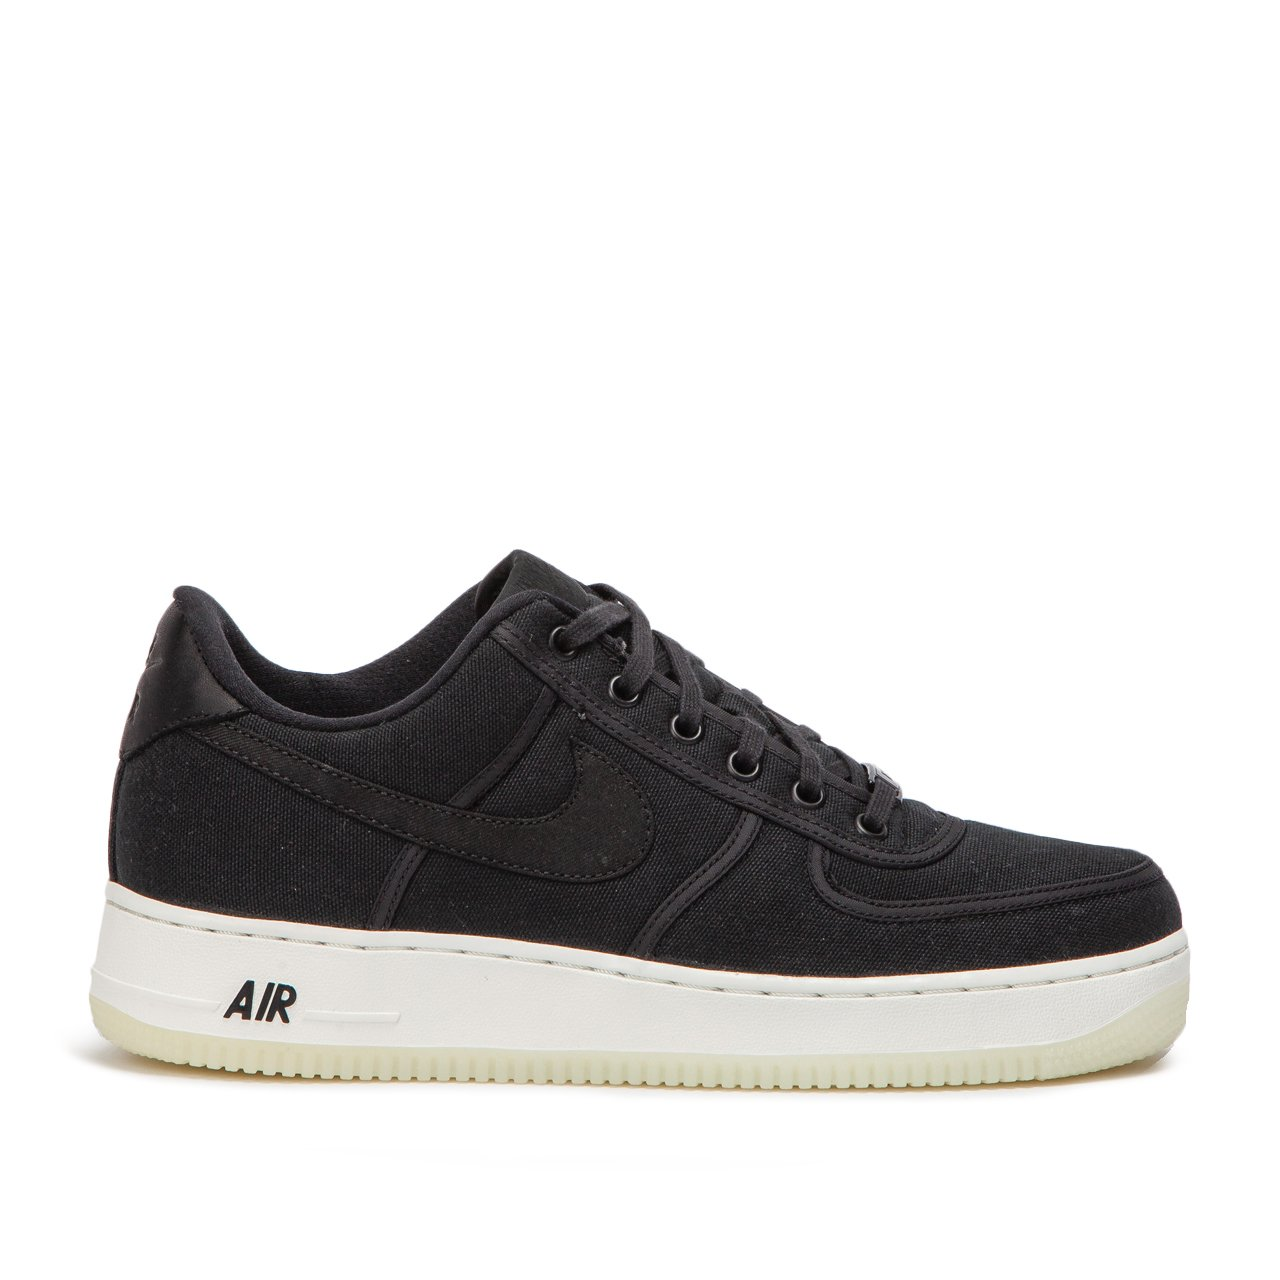 Nike Air Force 1 Low Sneaker Weiß